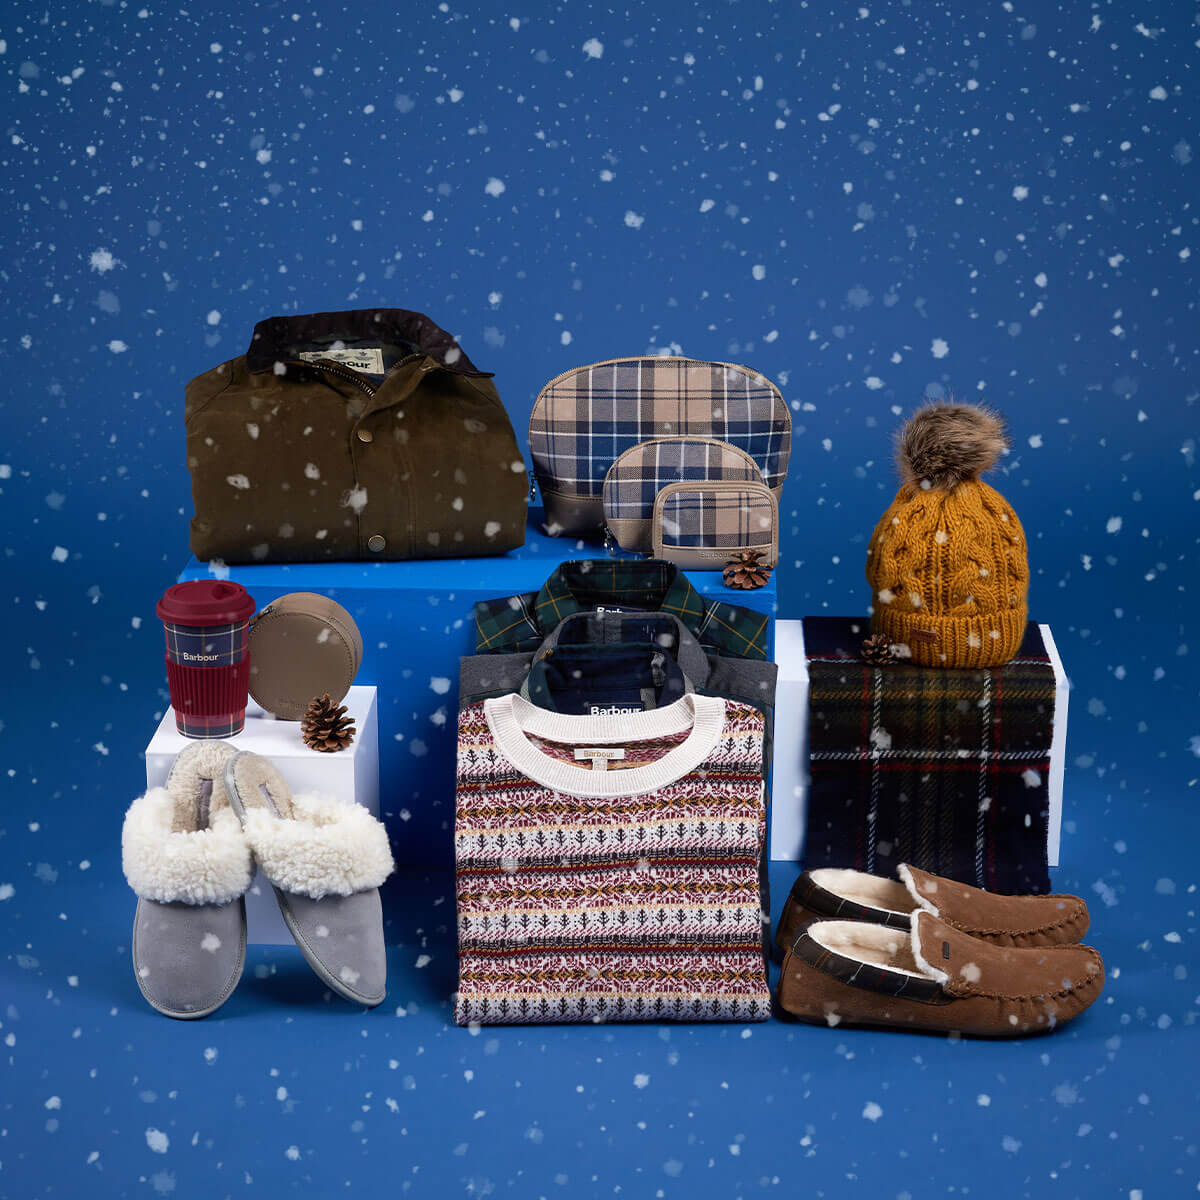 Background image for Barbour Christmas | Gift Guide